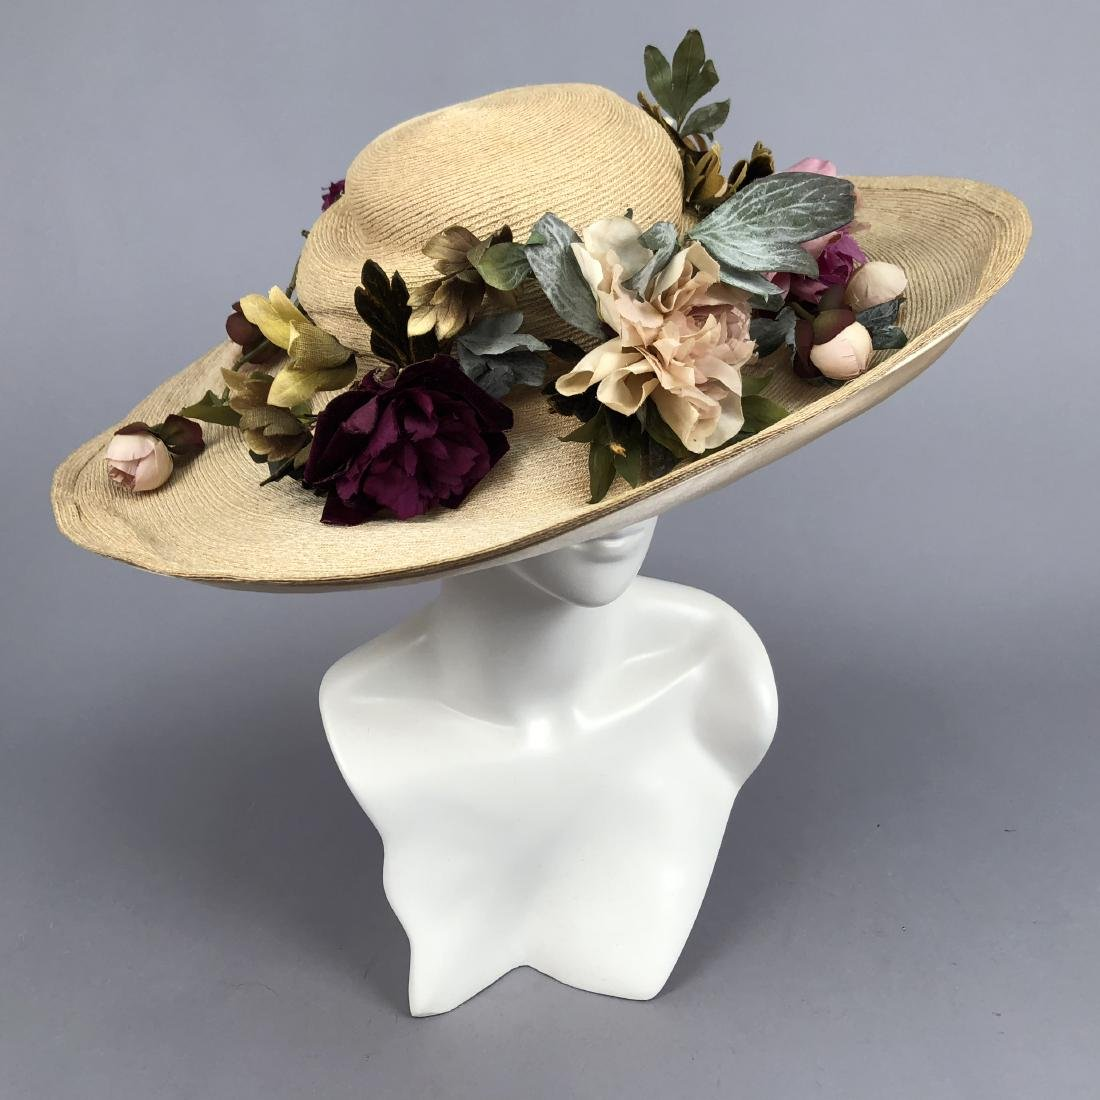 WIDE-BRIM STRAW HAT with PEONIES, QUEENS AUCTION, c.